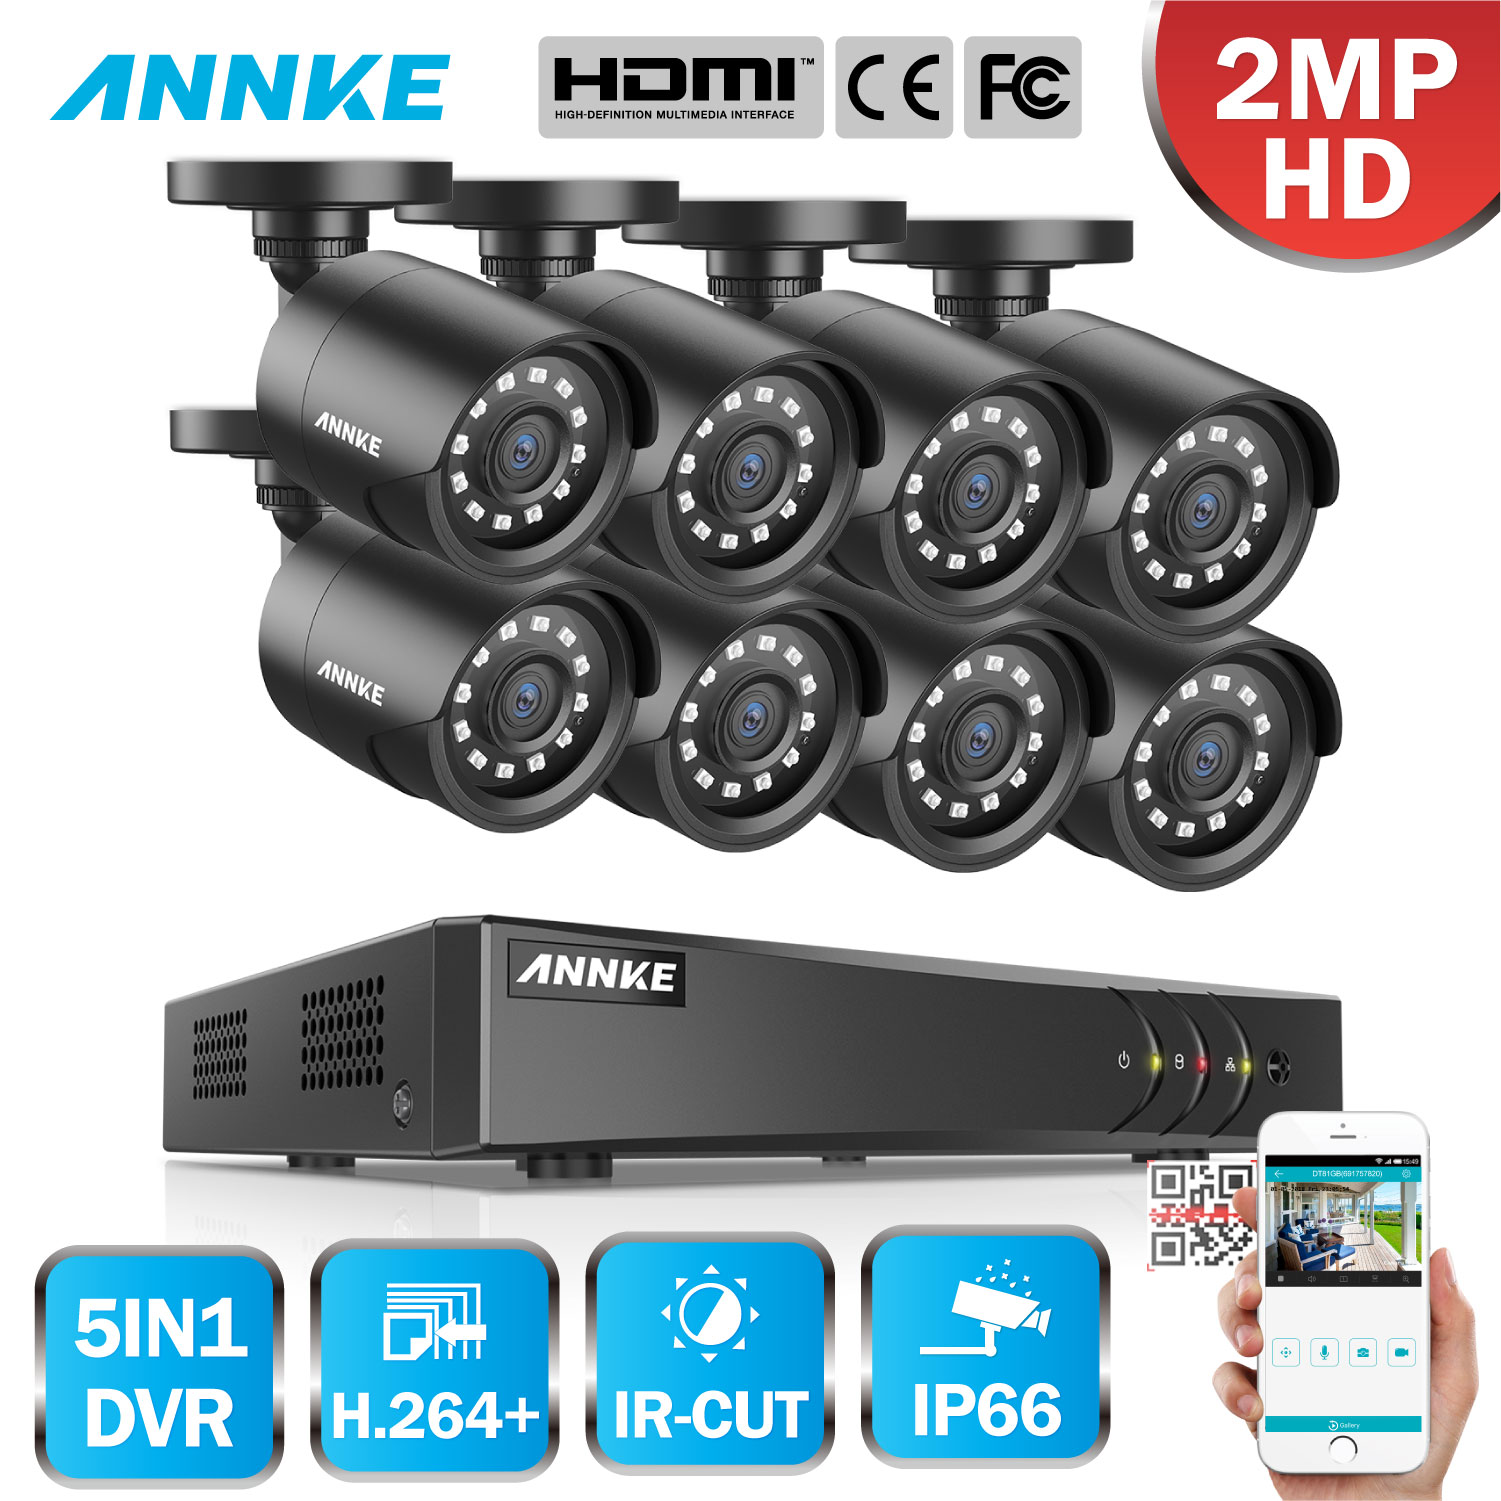 ANNKE 8CH HD 1080P Video Security Surveillance System 5in1 1080N H.264+ DVR 8PCS HD TVI Smart IR Bullet Weatherproof CCTV Camera